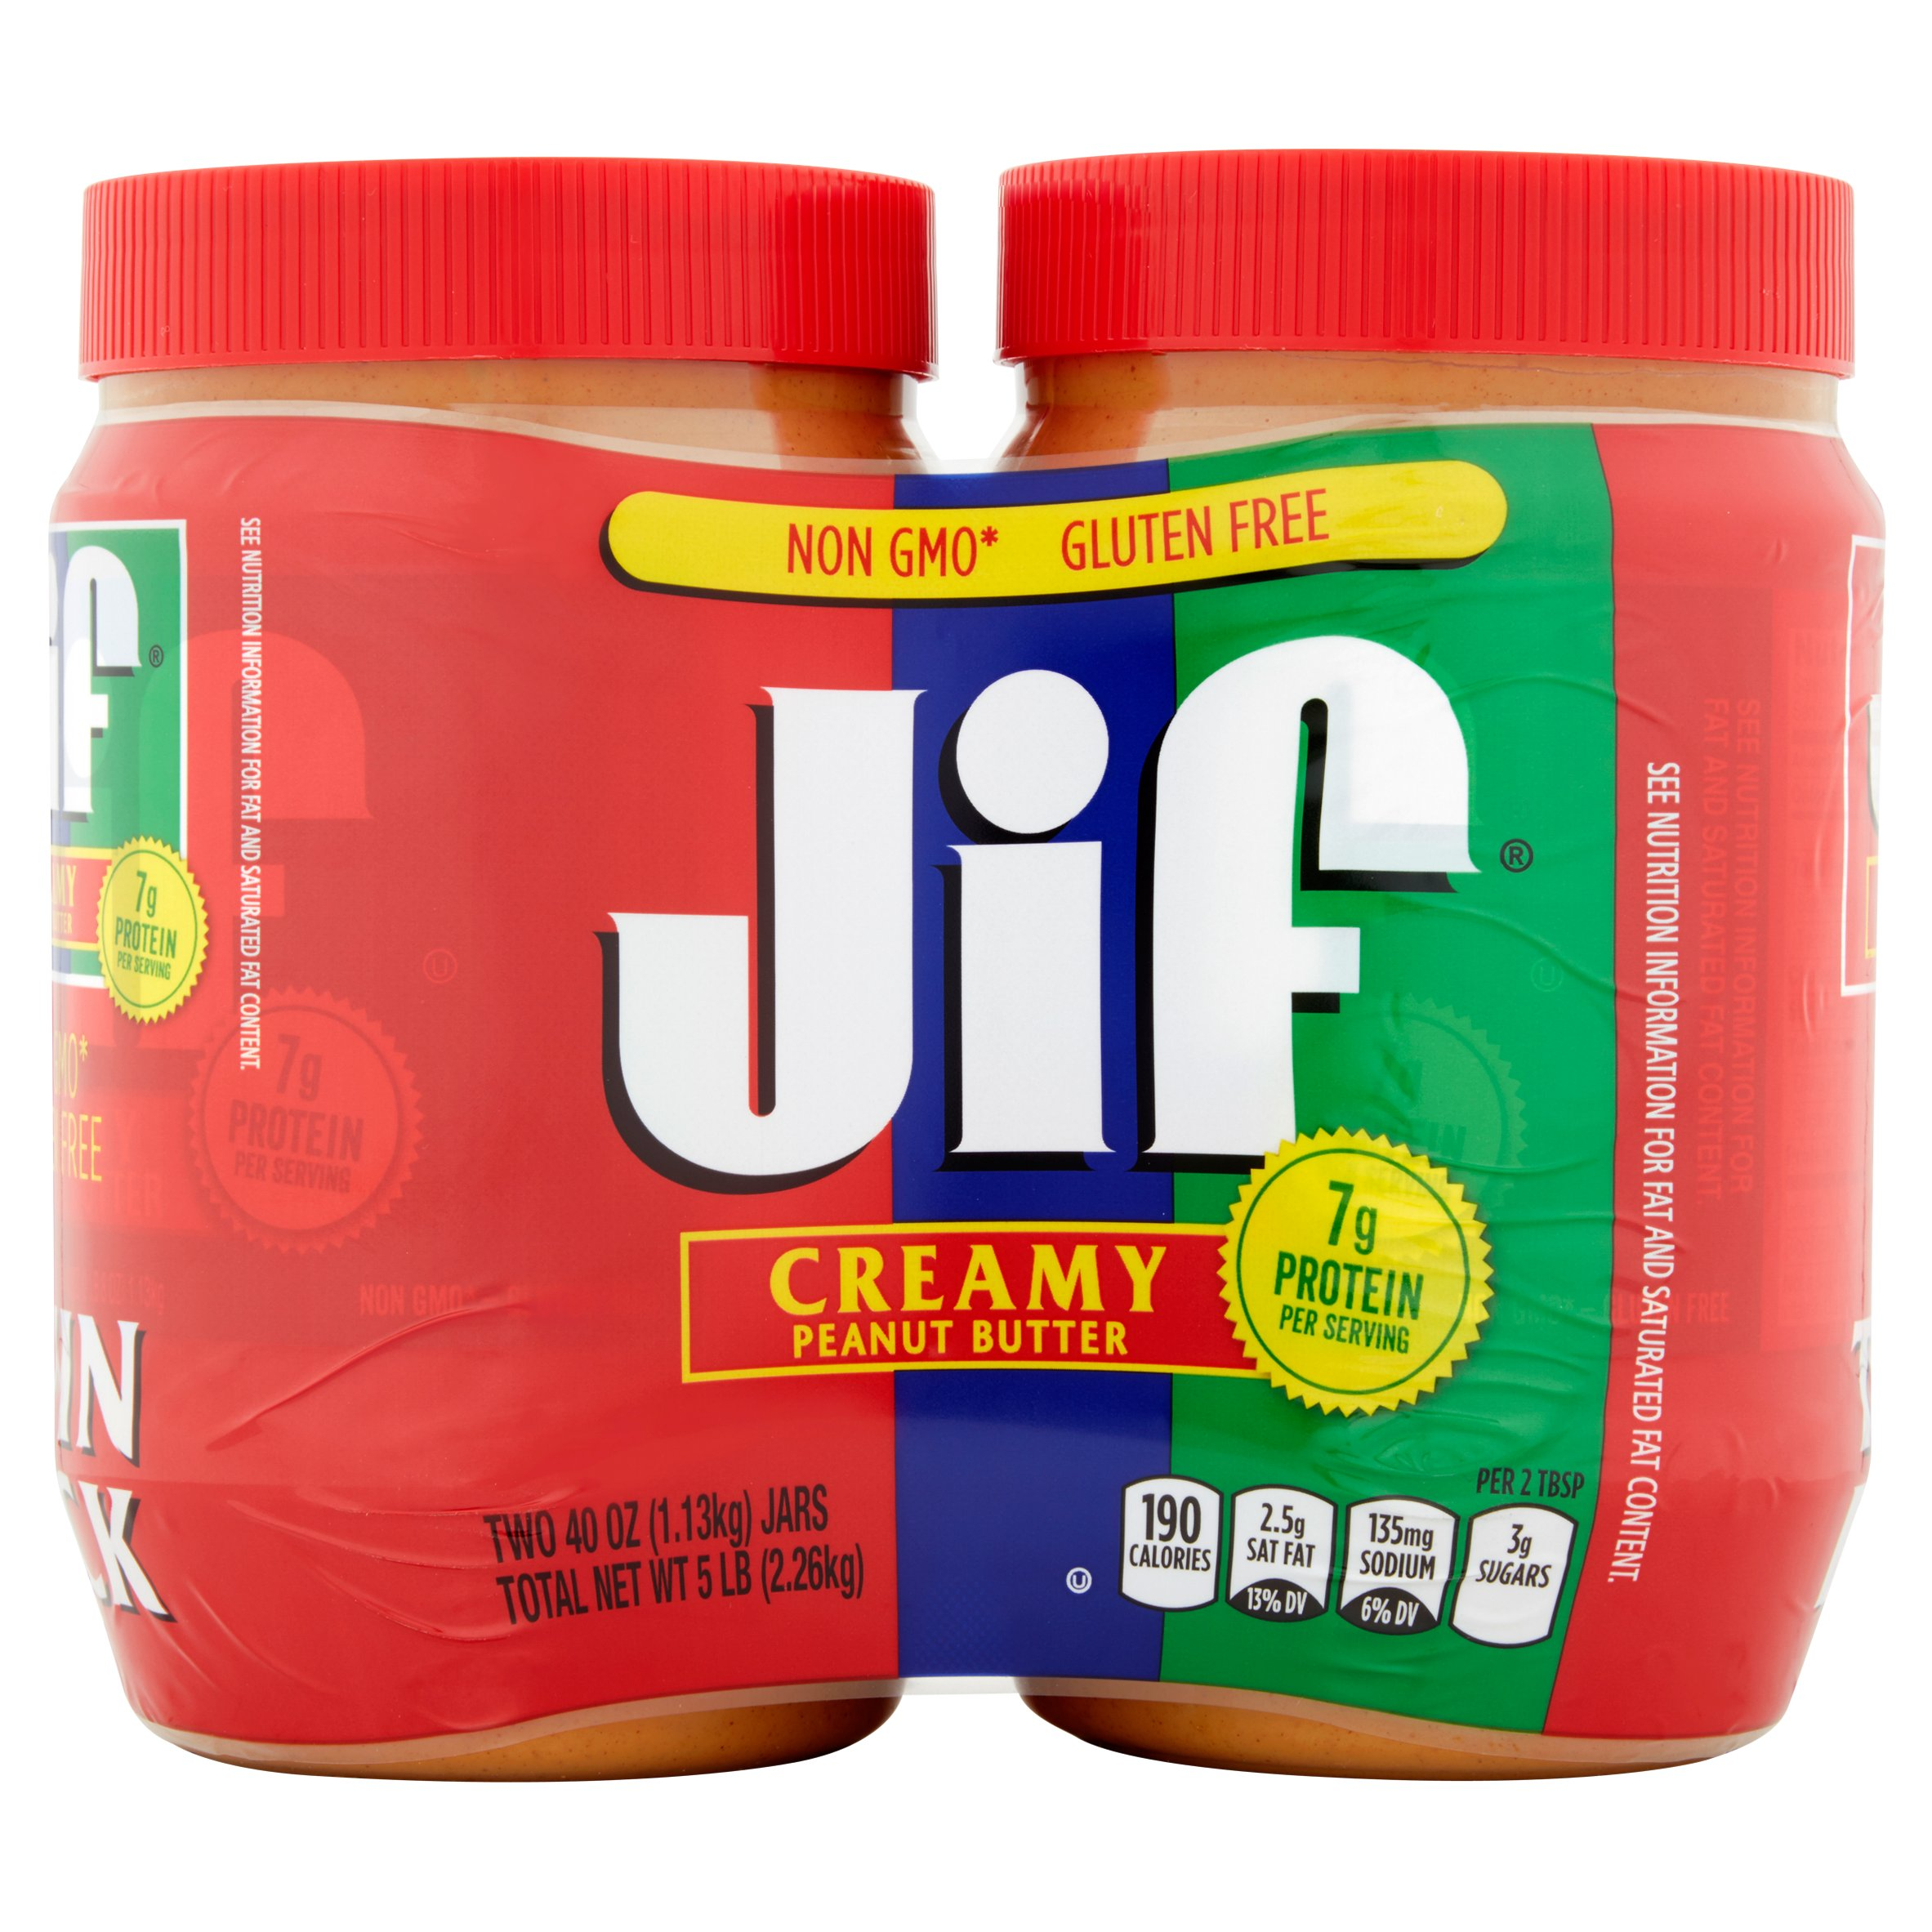 Jif Twin Pack, Creamy Peanut Butter, 40 oz